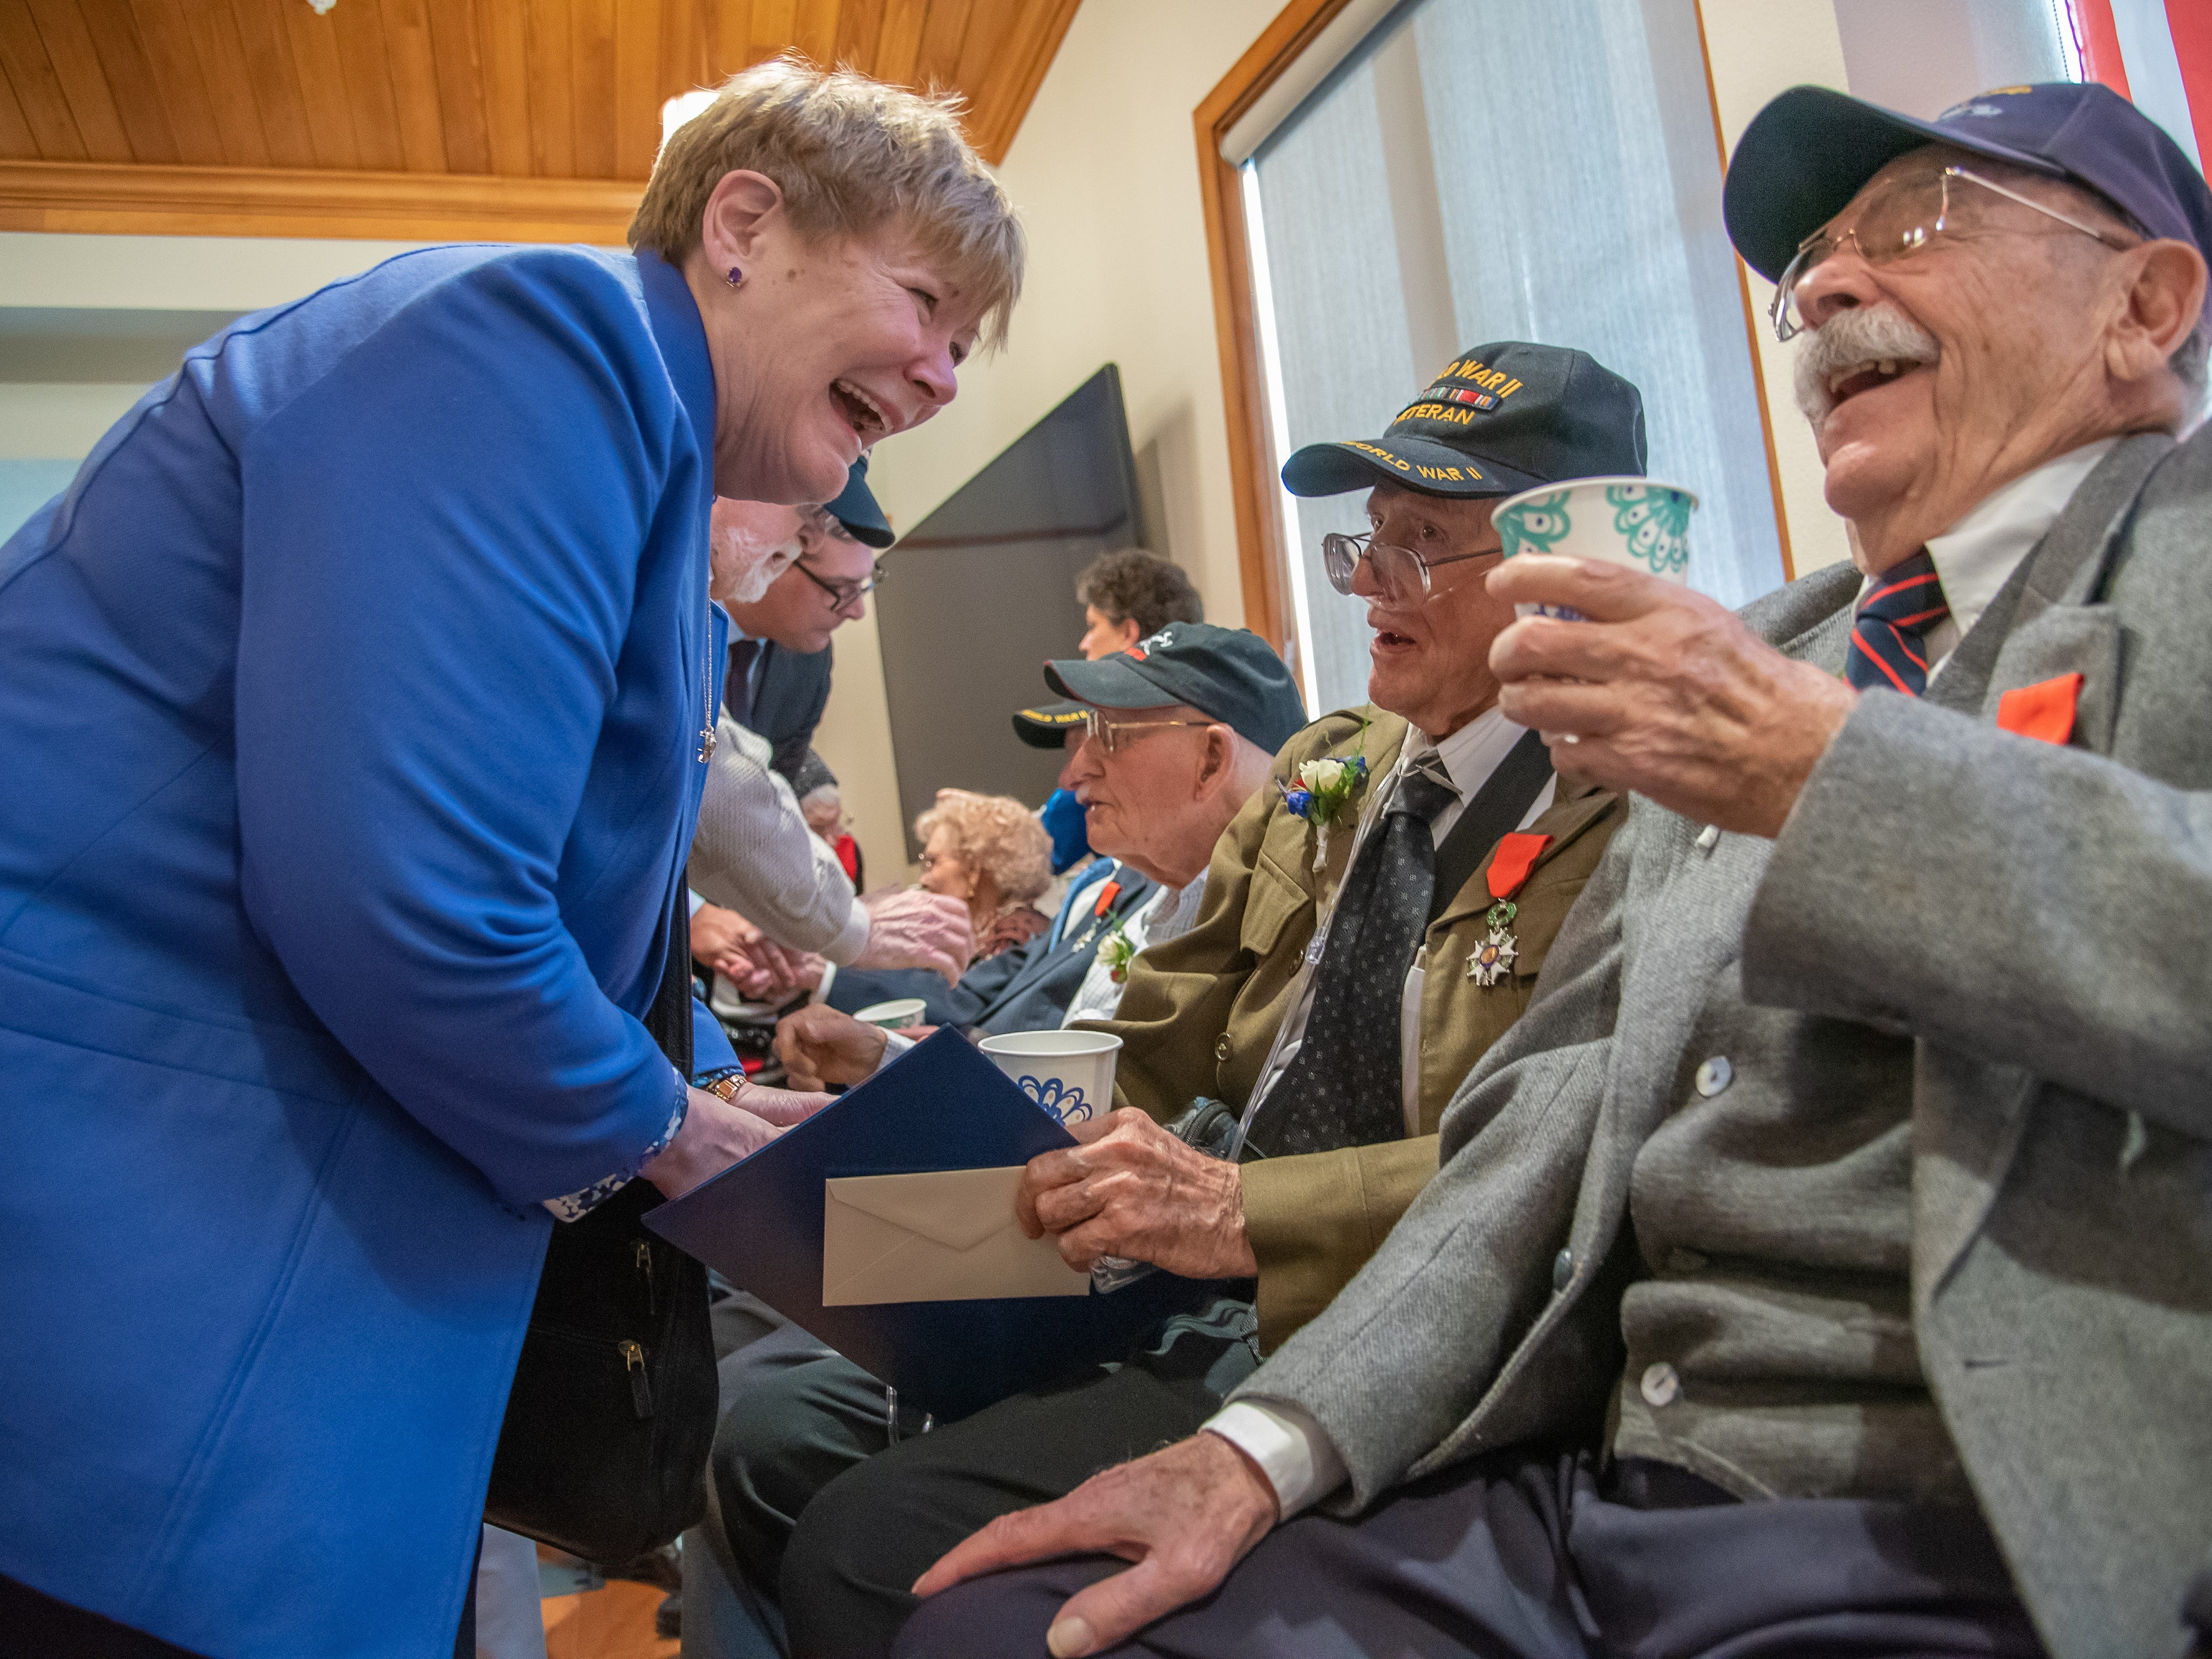 SSG Harry Maroncelli, World War II veteran and Fort Collins resident, shares a laugh with an audience member after receiving the French Legion of Honor on Monday, February 4, 2019, during a ceremony at the Good Samaritan Water Valley Resort in Windsor.